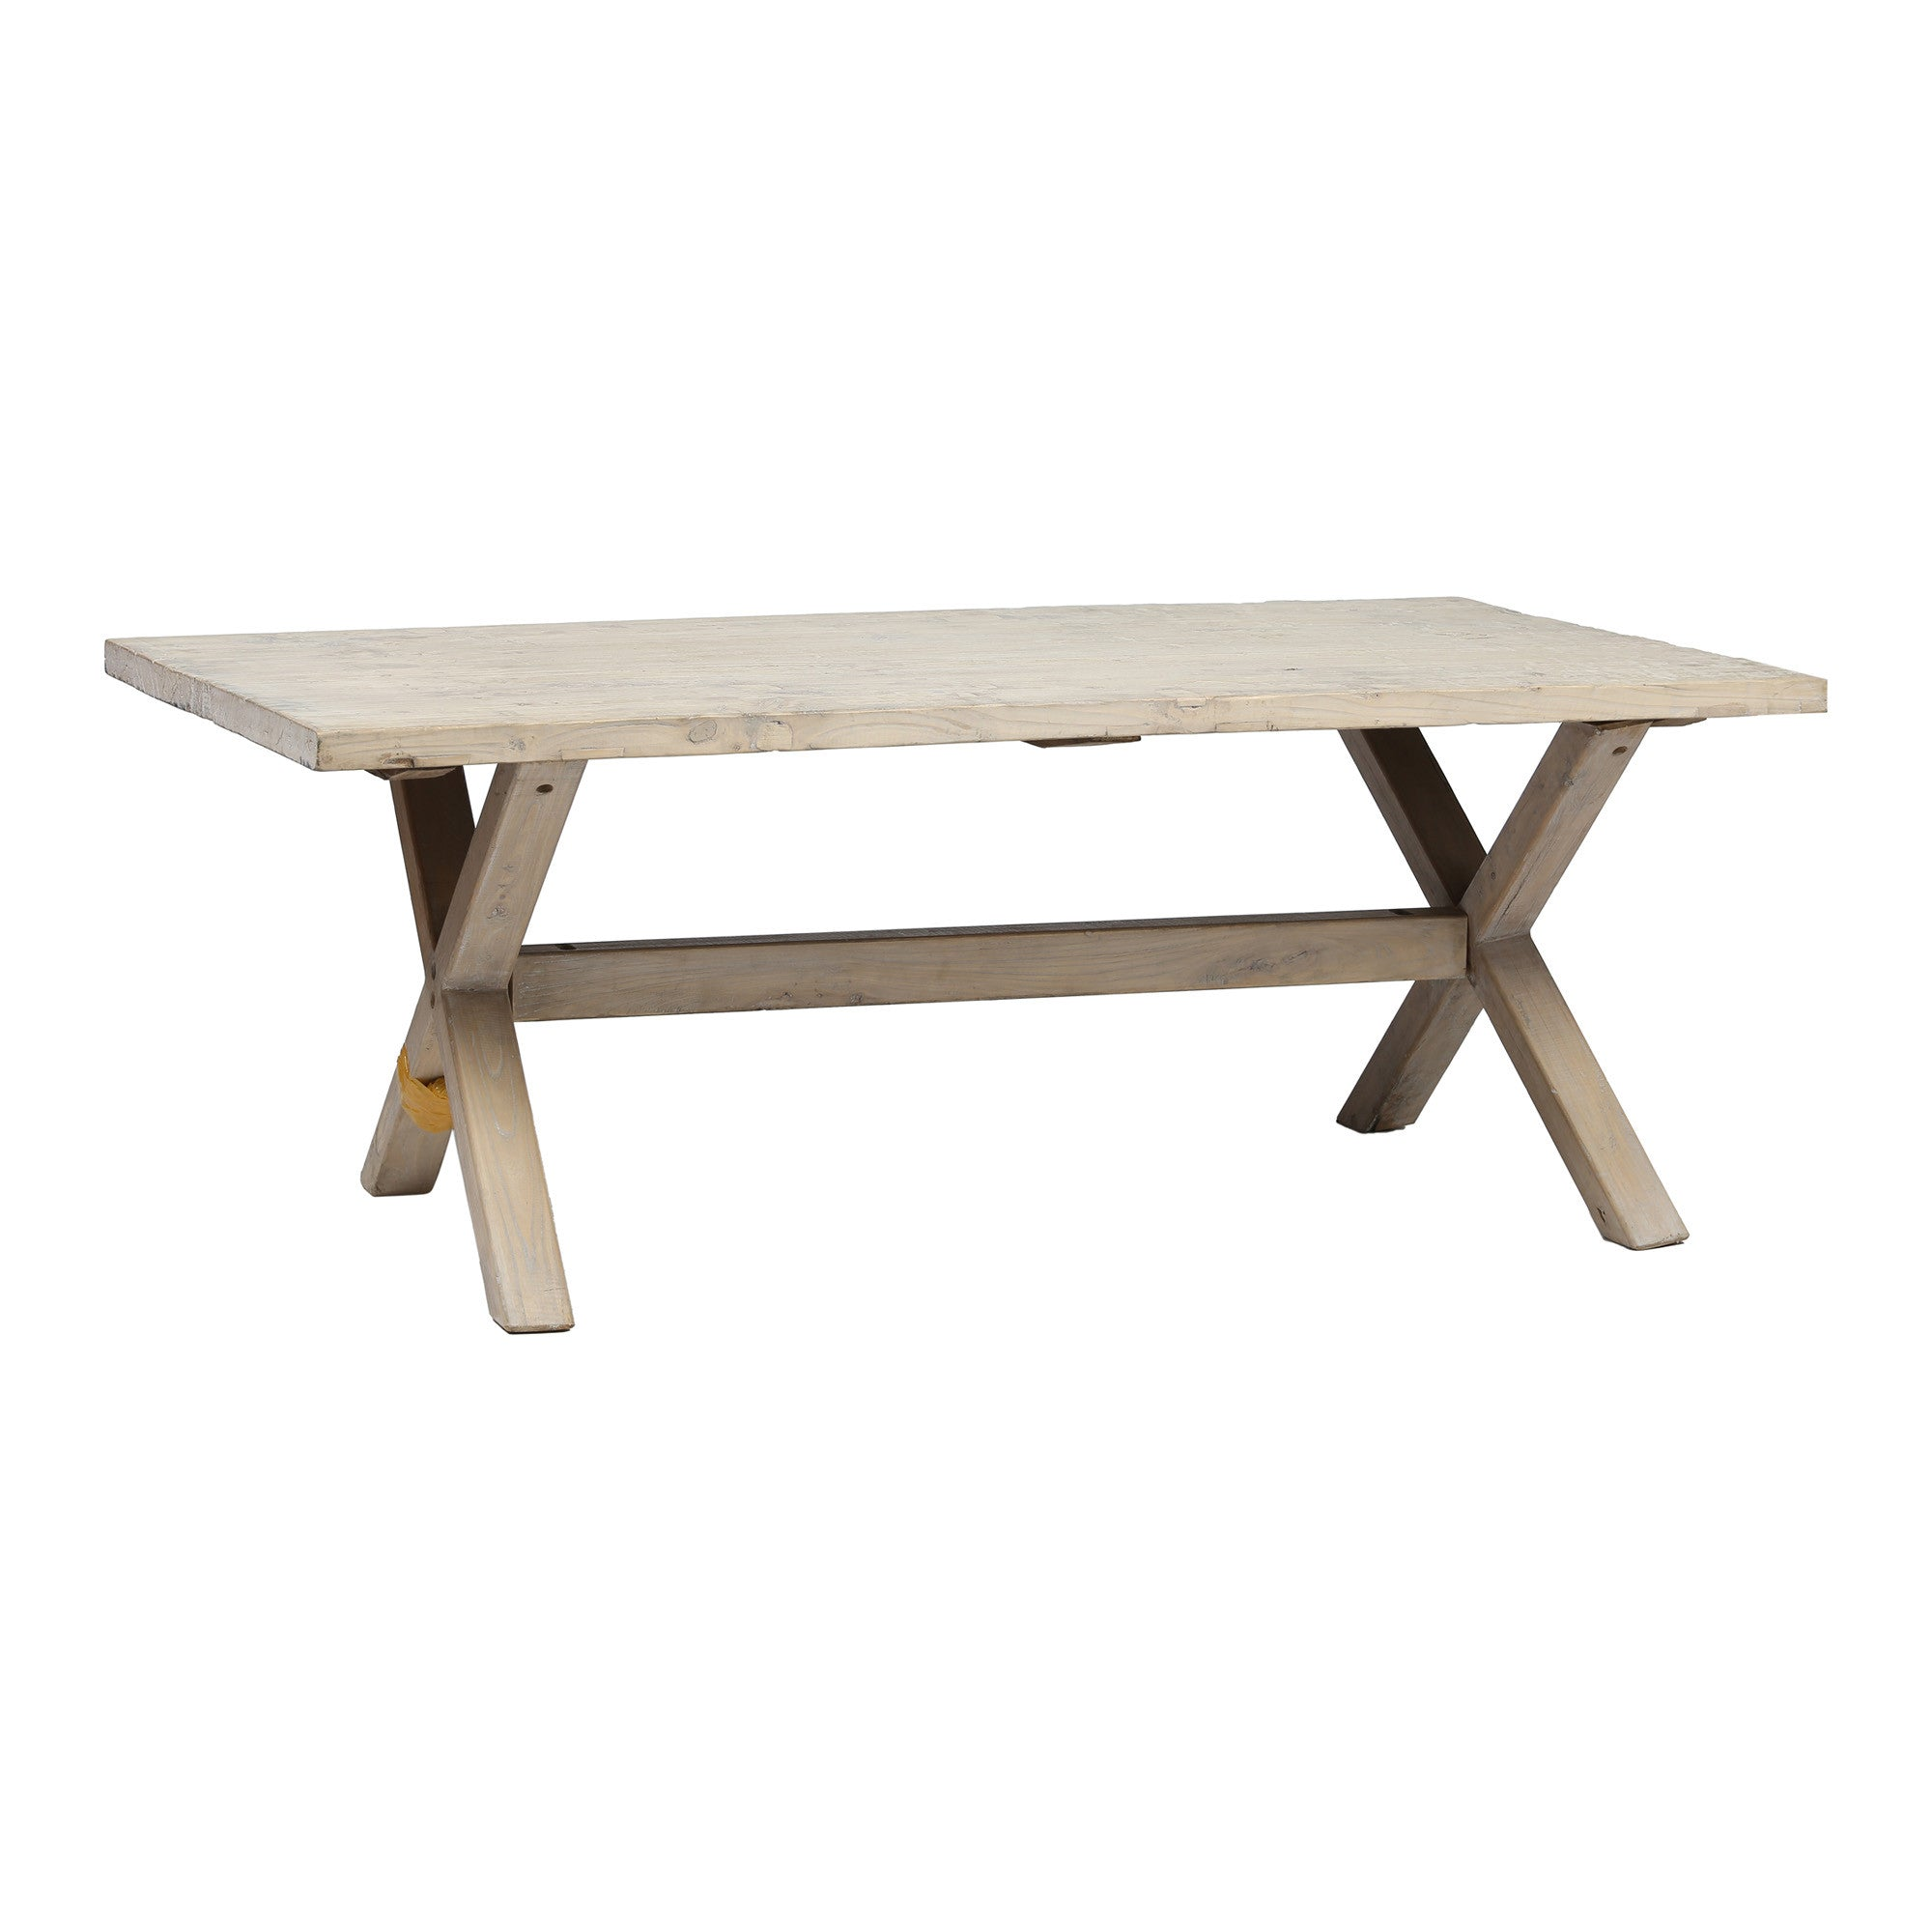 Contemporary Rustic Chinese Dining Table side view